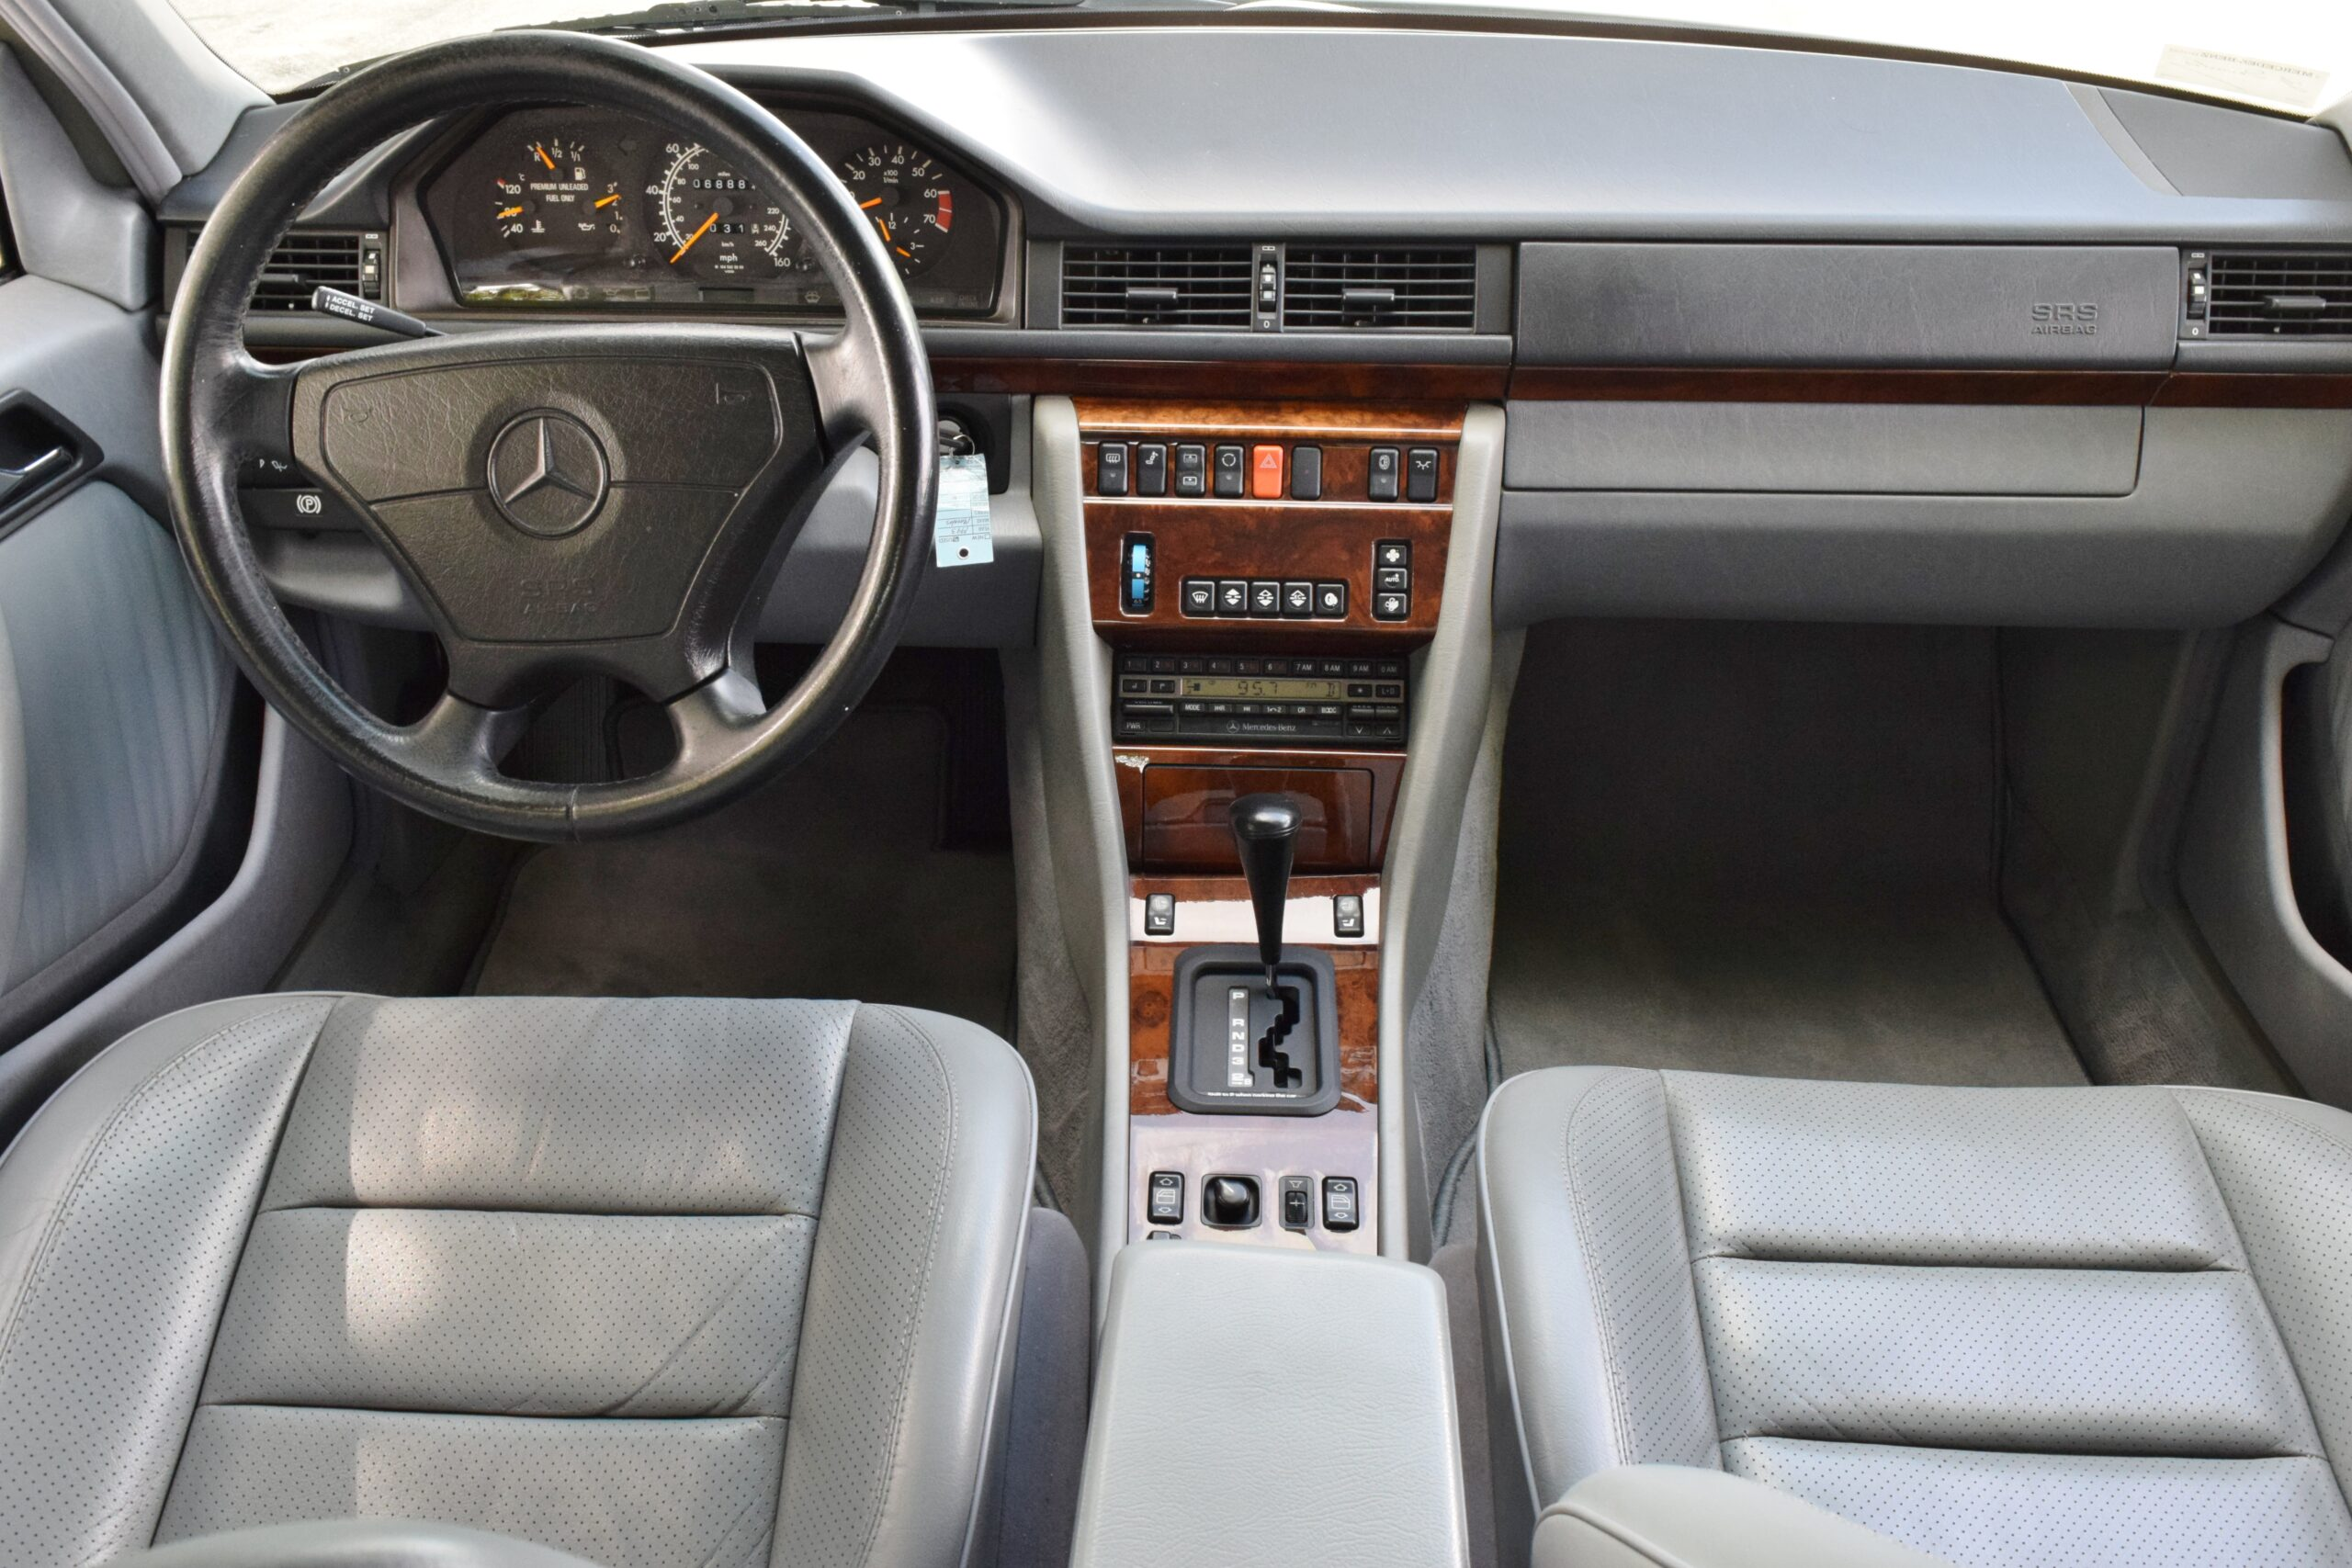 1993 Mercedes-Benz 500E W-124 Rare Arctic White – ONLY 68K Miles – Detailed Maintenance and Service History